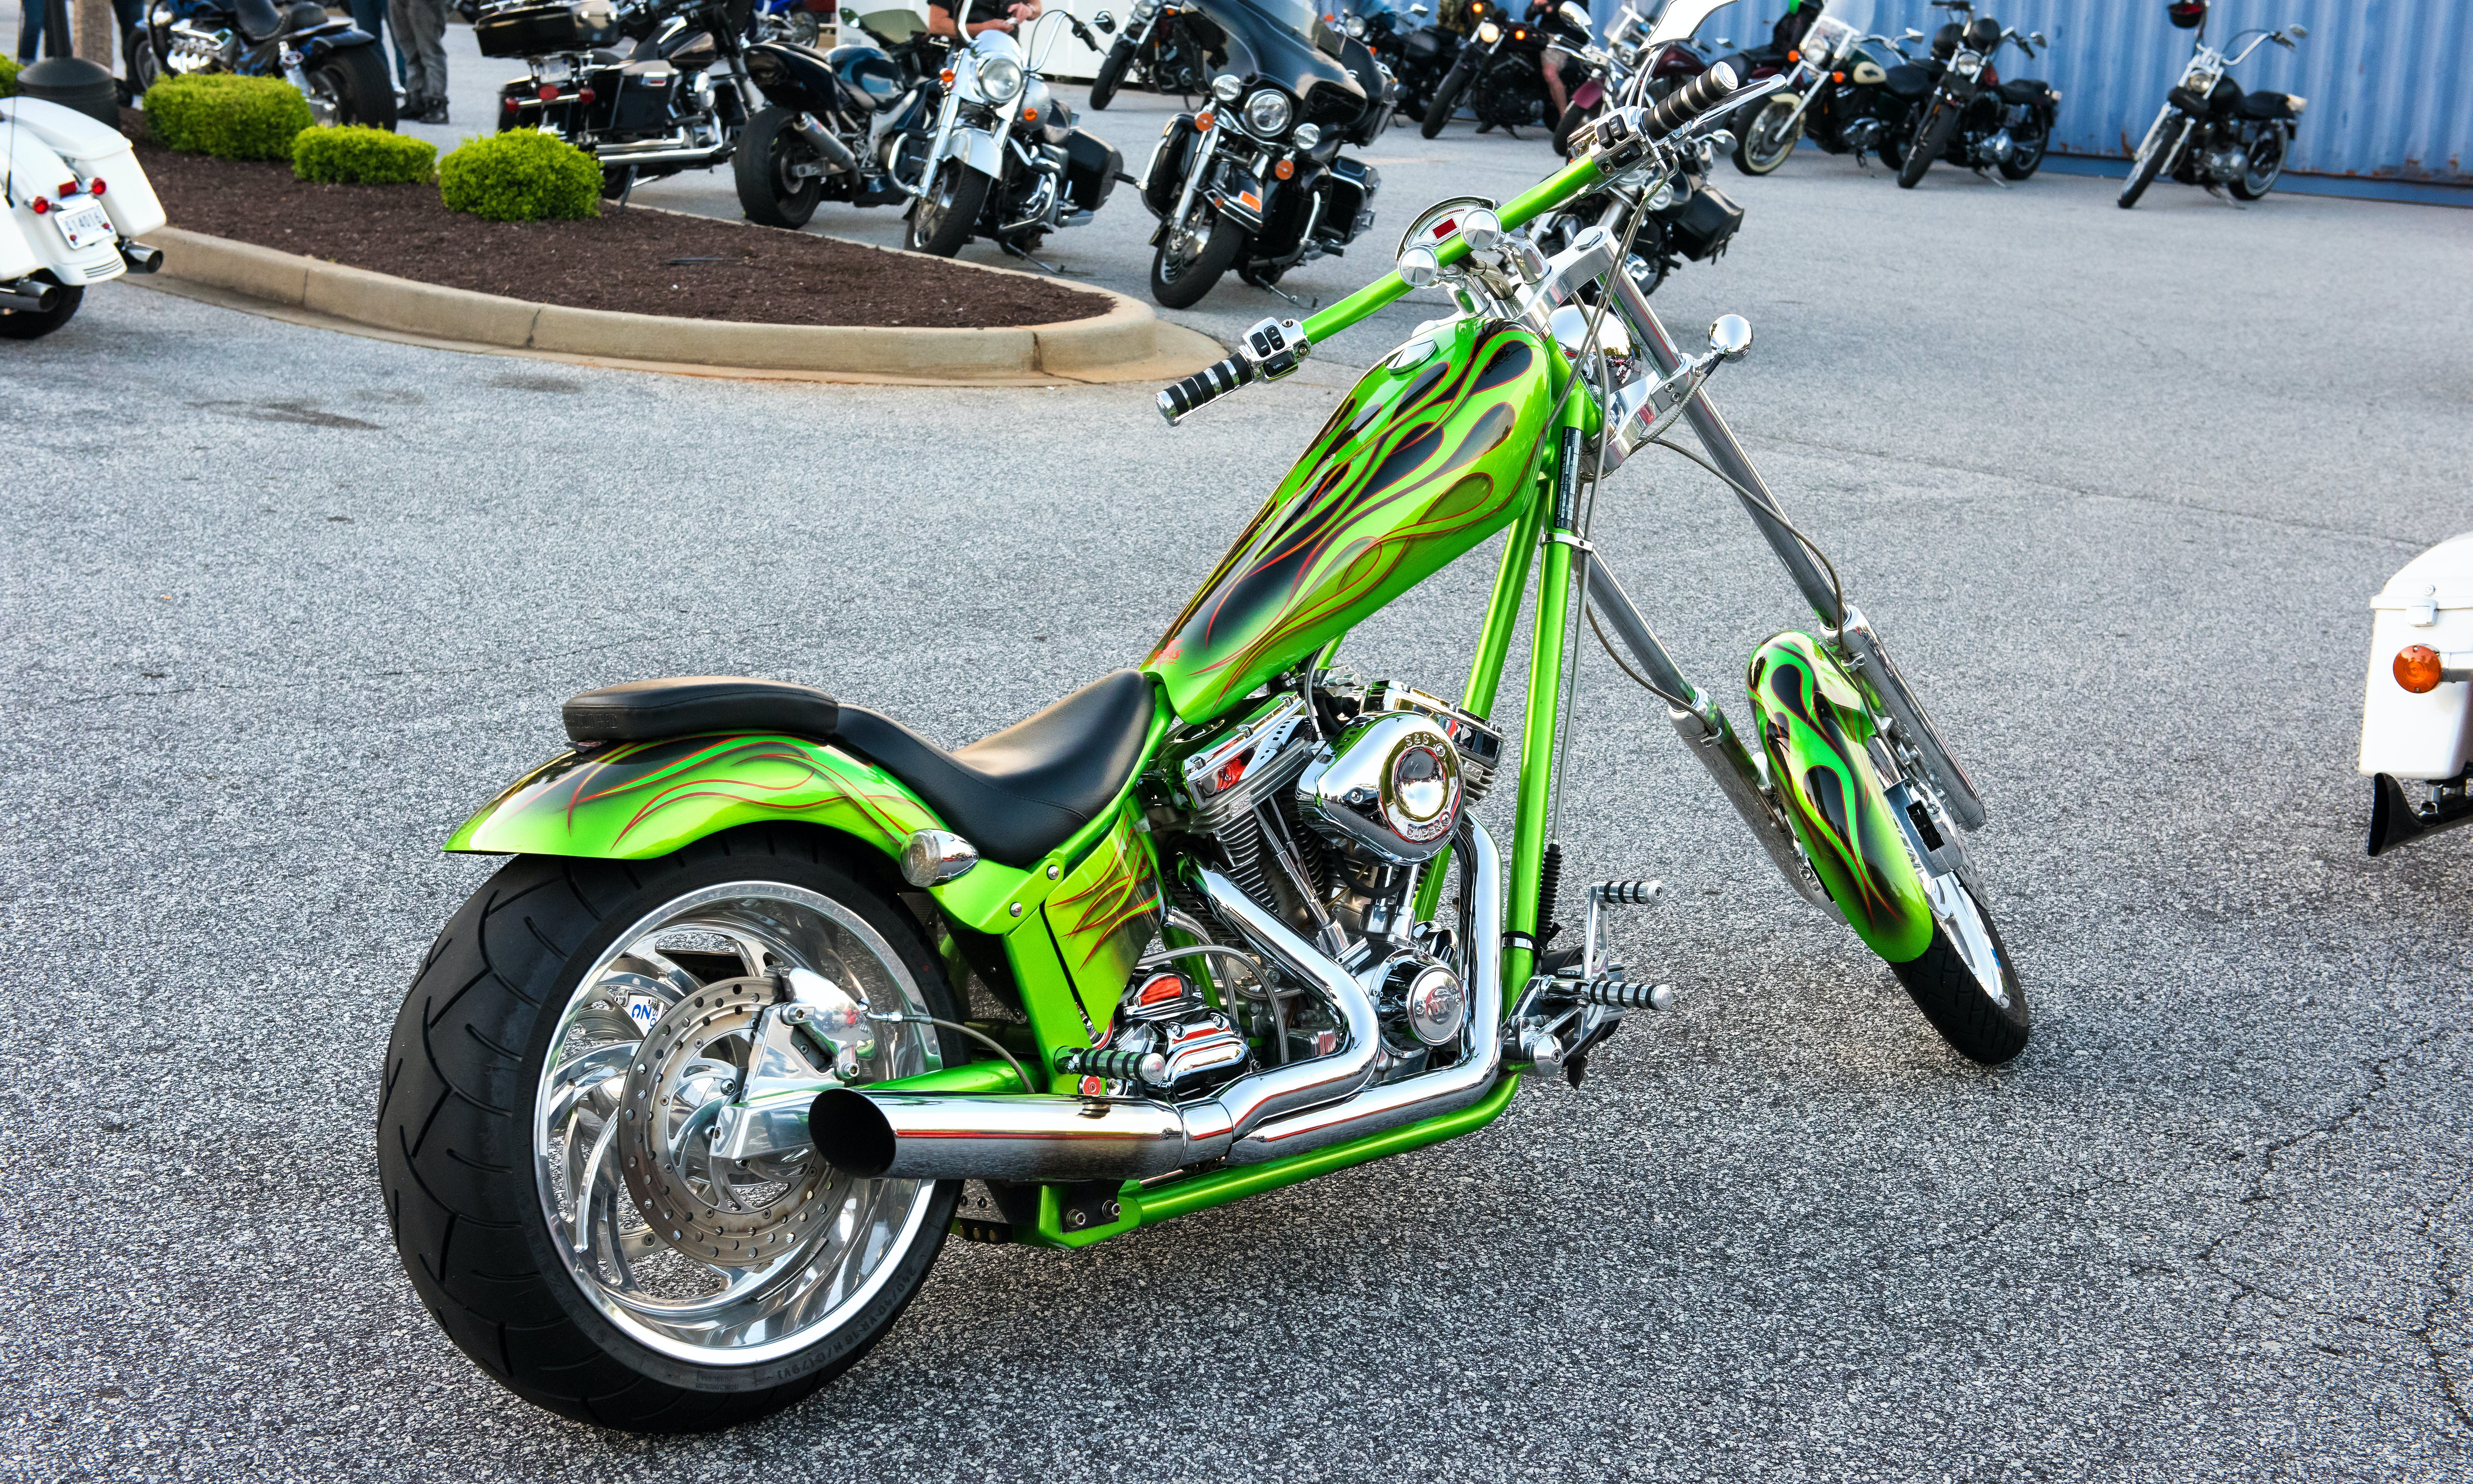 Green Naked Chopper Motorcycle on Parking Lot